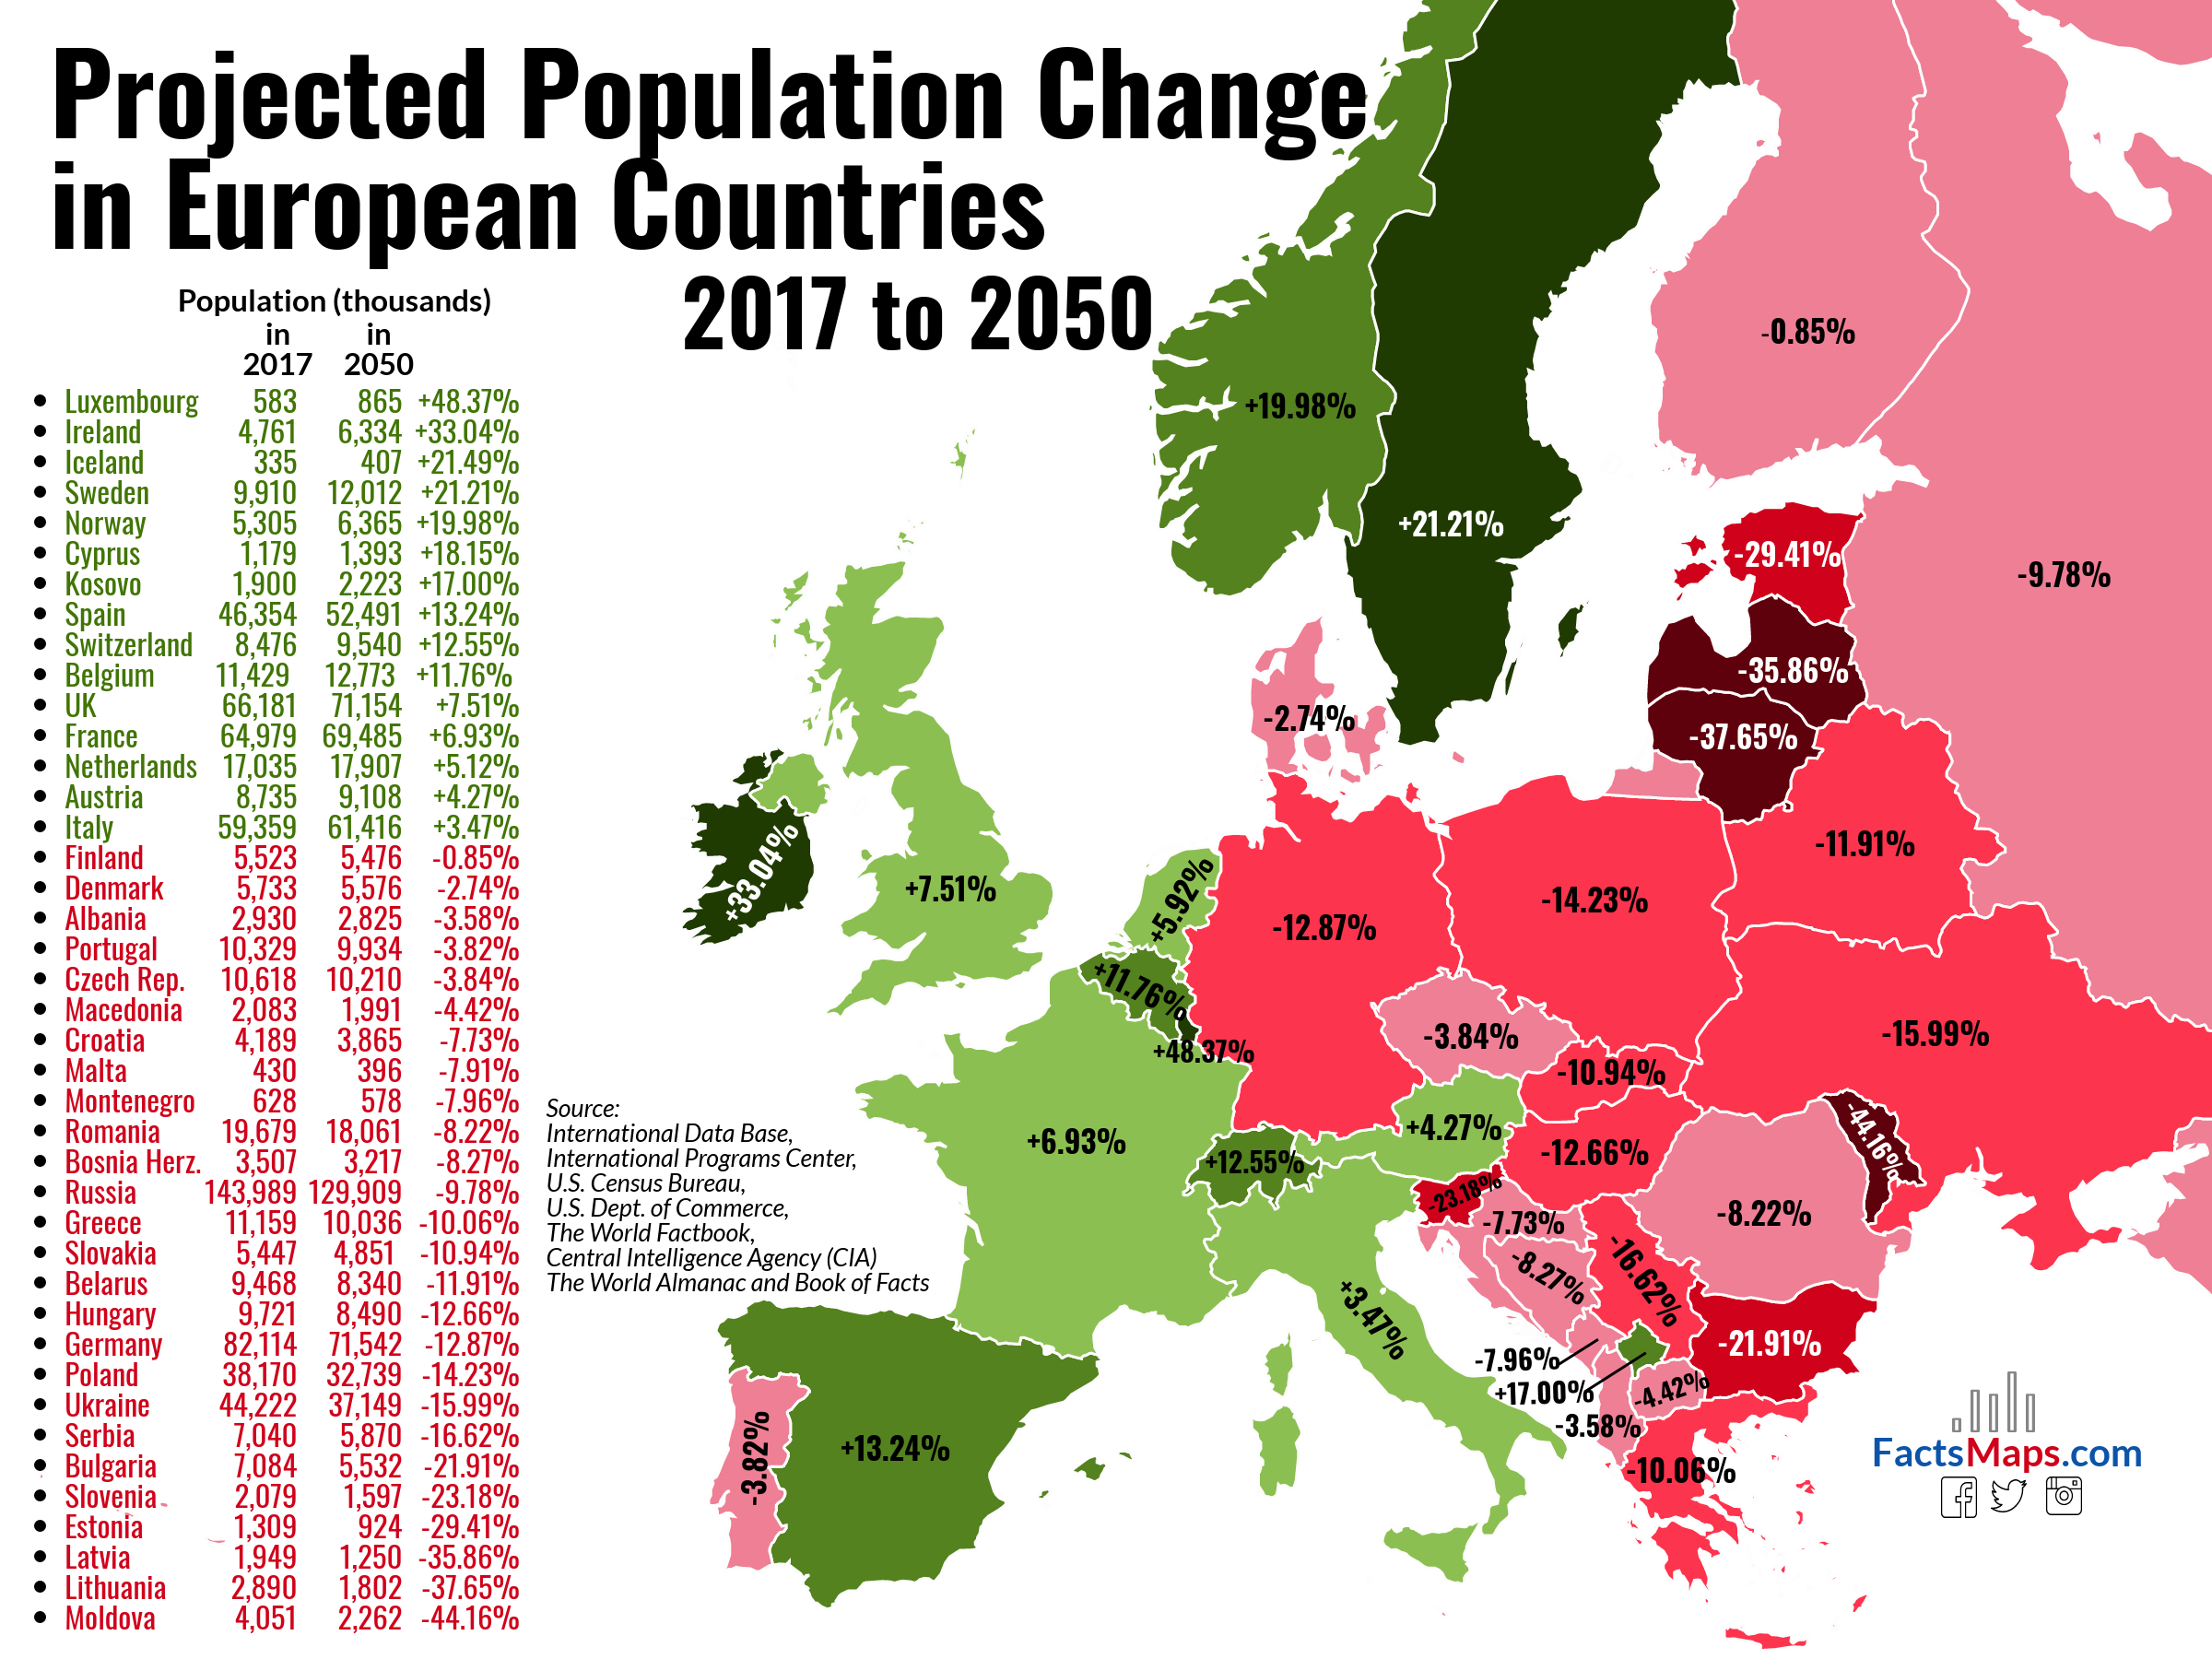 Projected Population Change In European Countries 2017 To